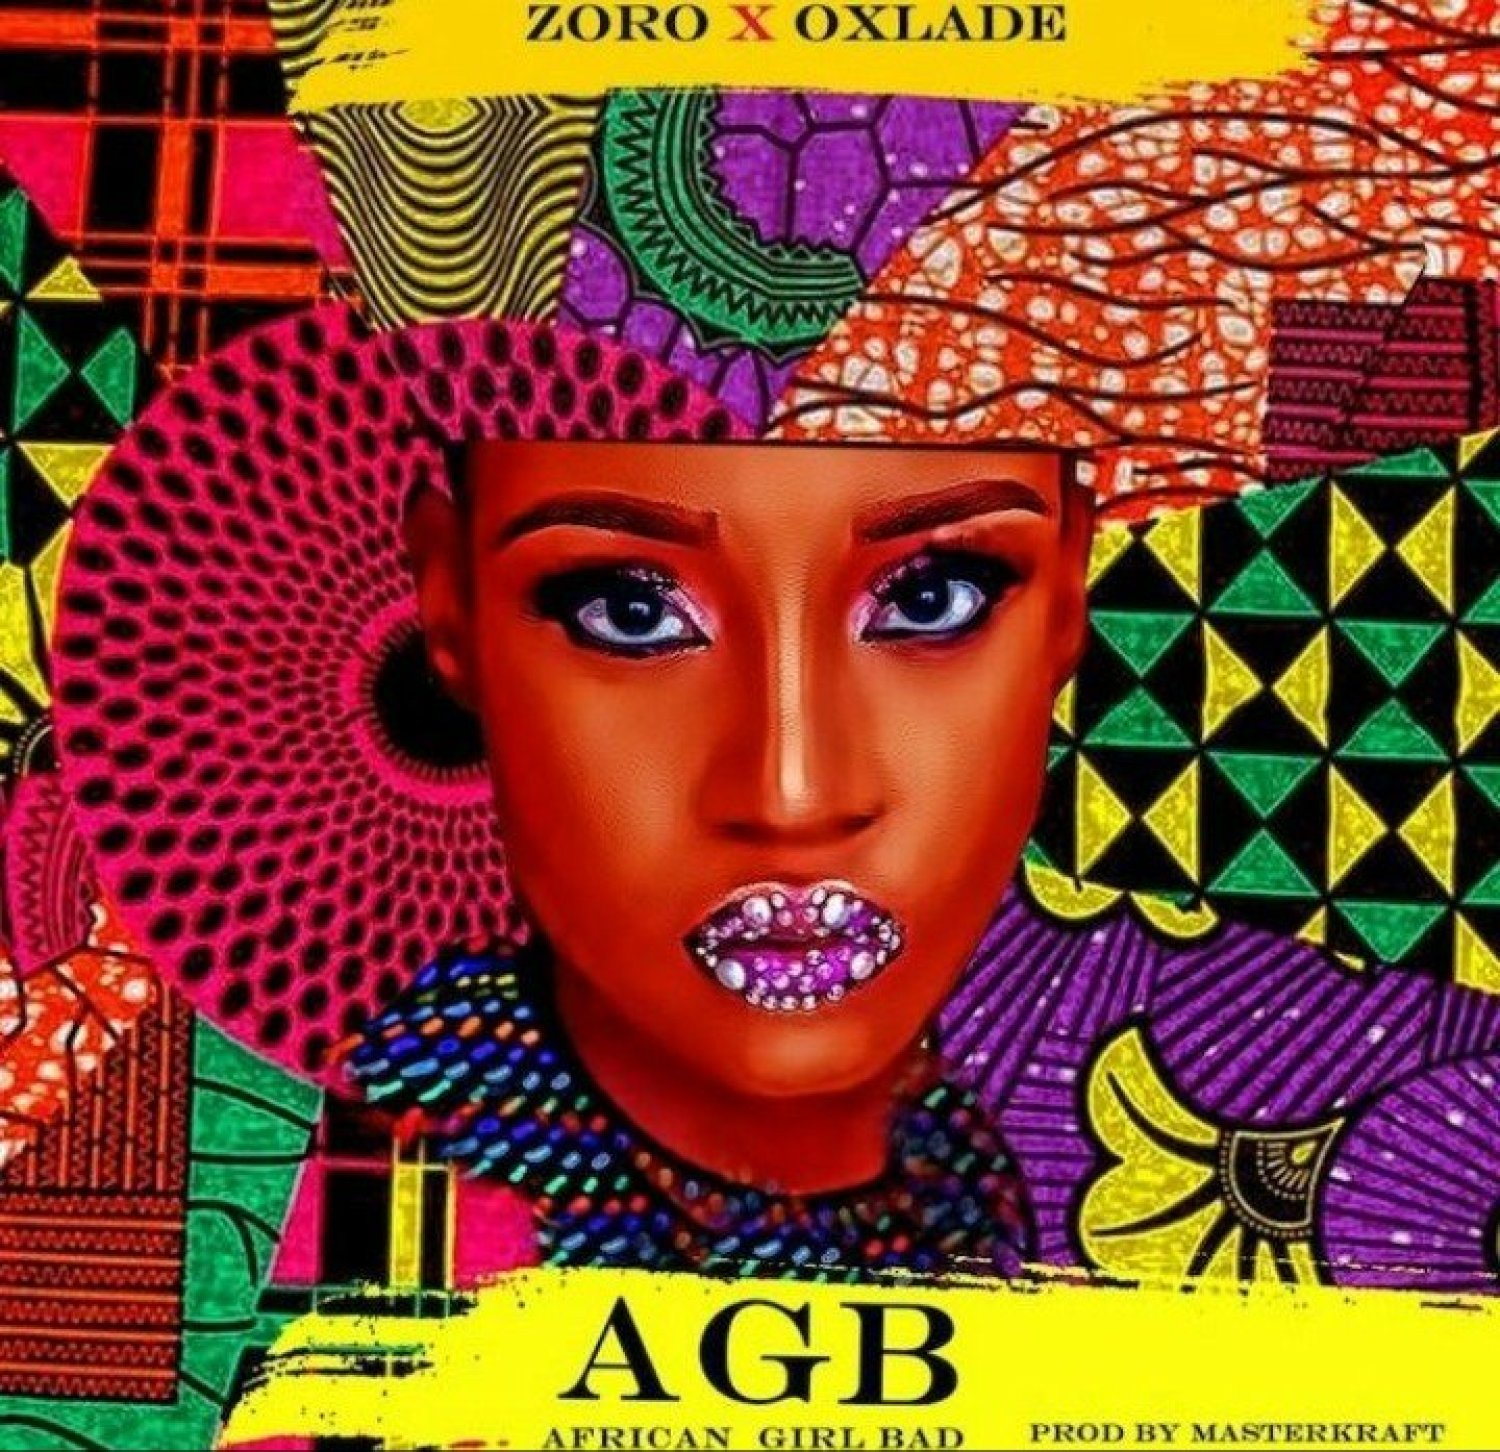 DOWNLOAD MP3: Zoro – African Girl Bad Ft. Oxlade(Free MP3) AUDIO 320kbps